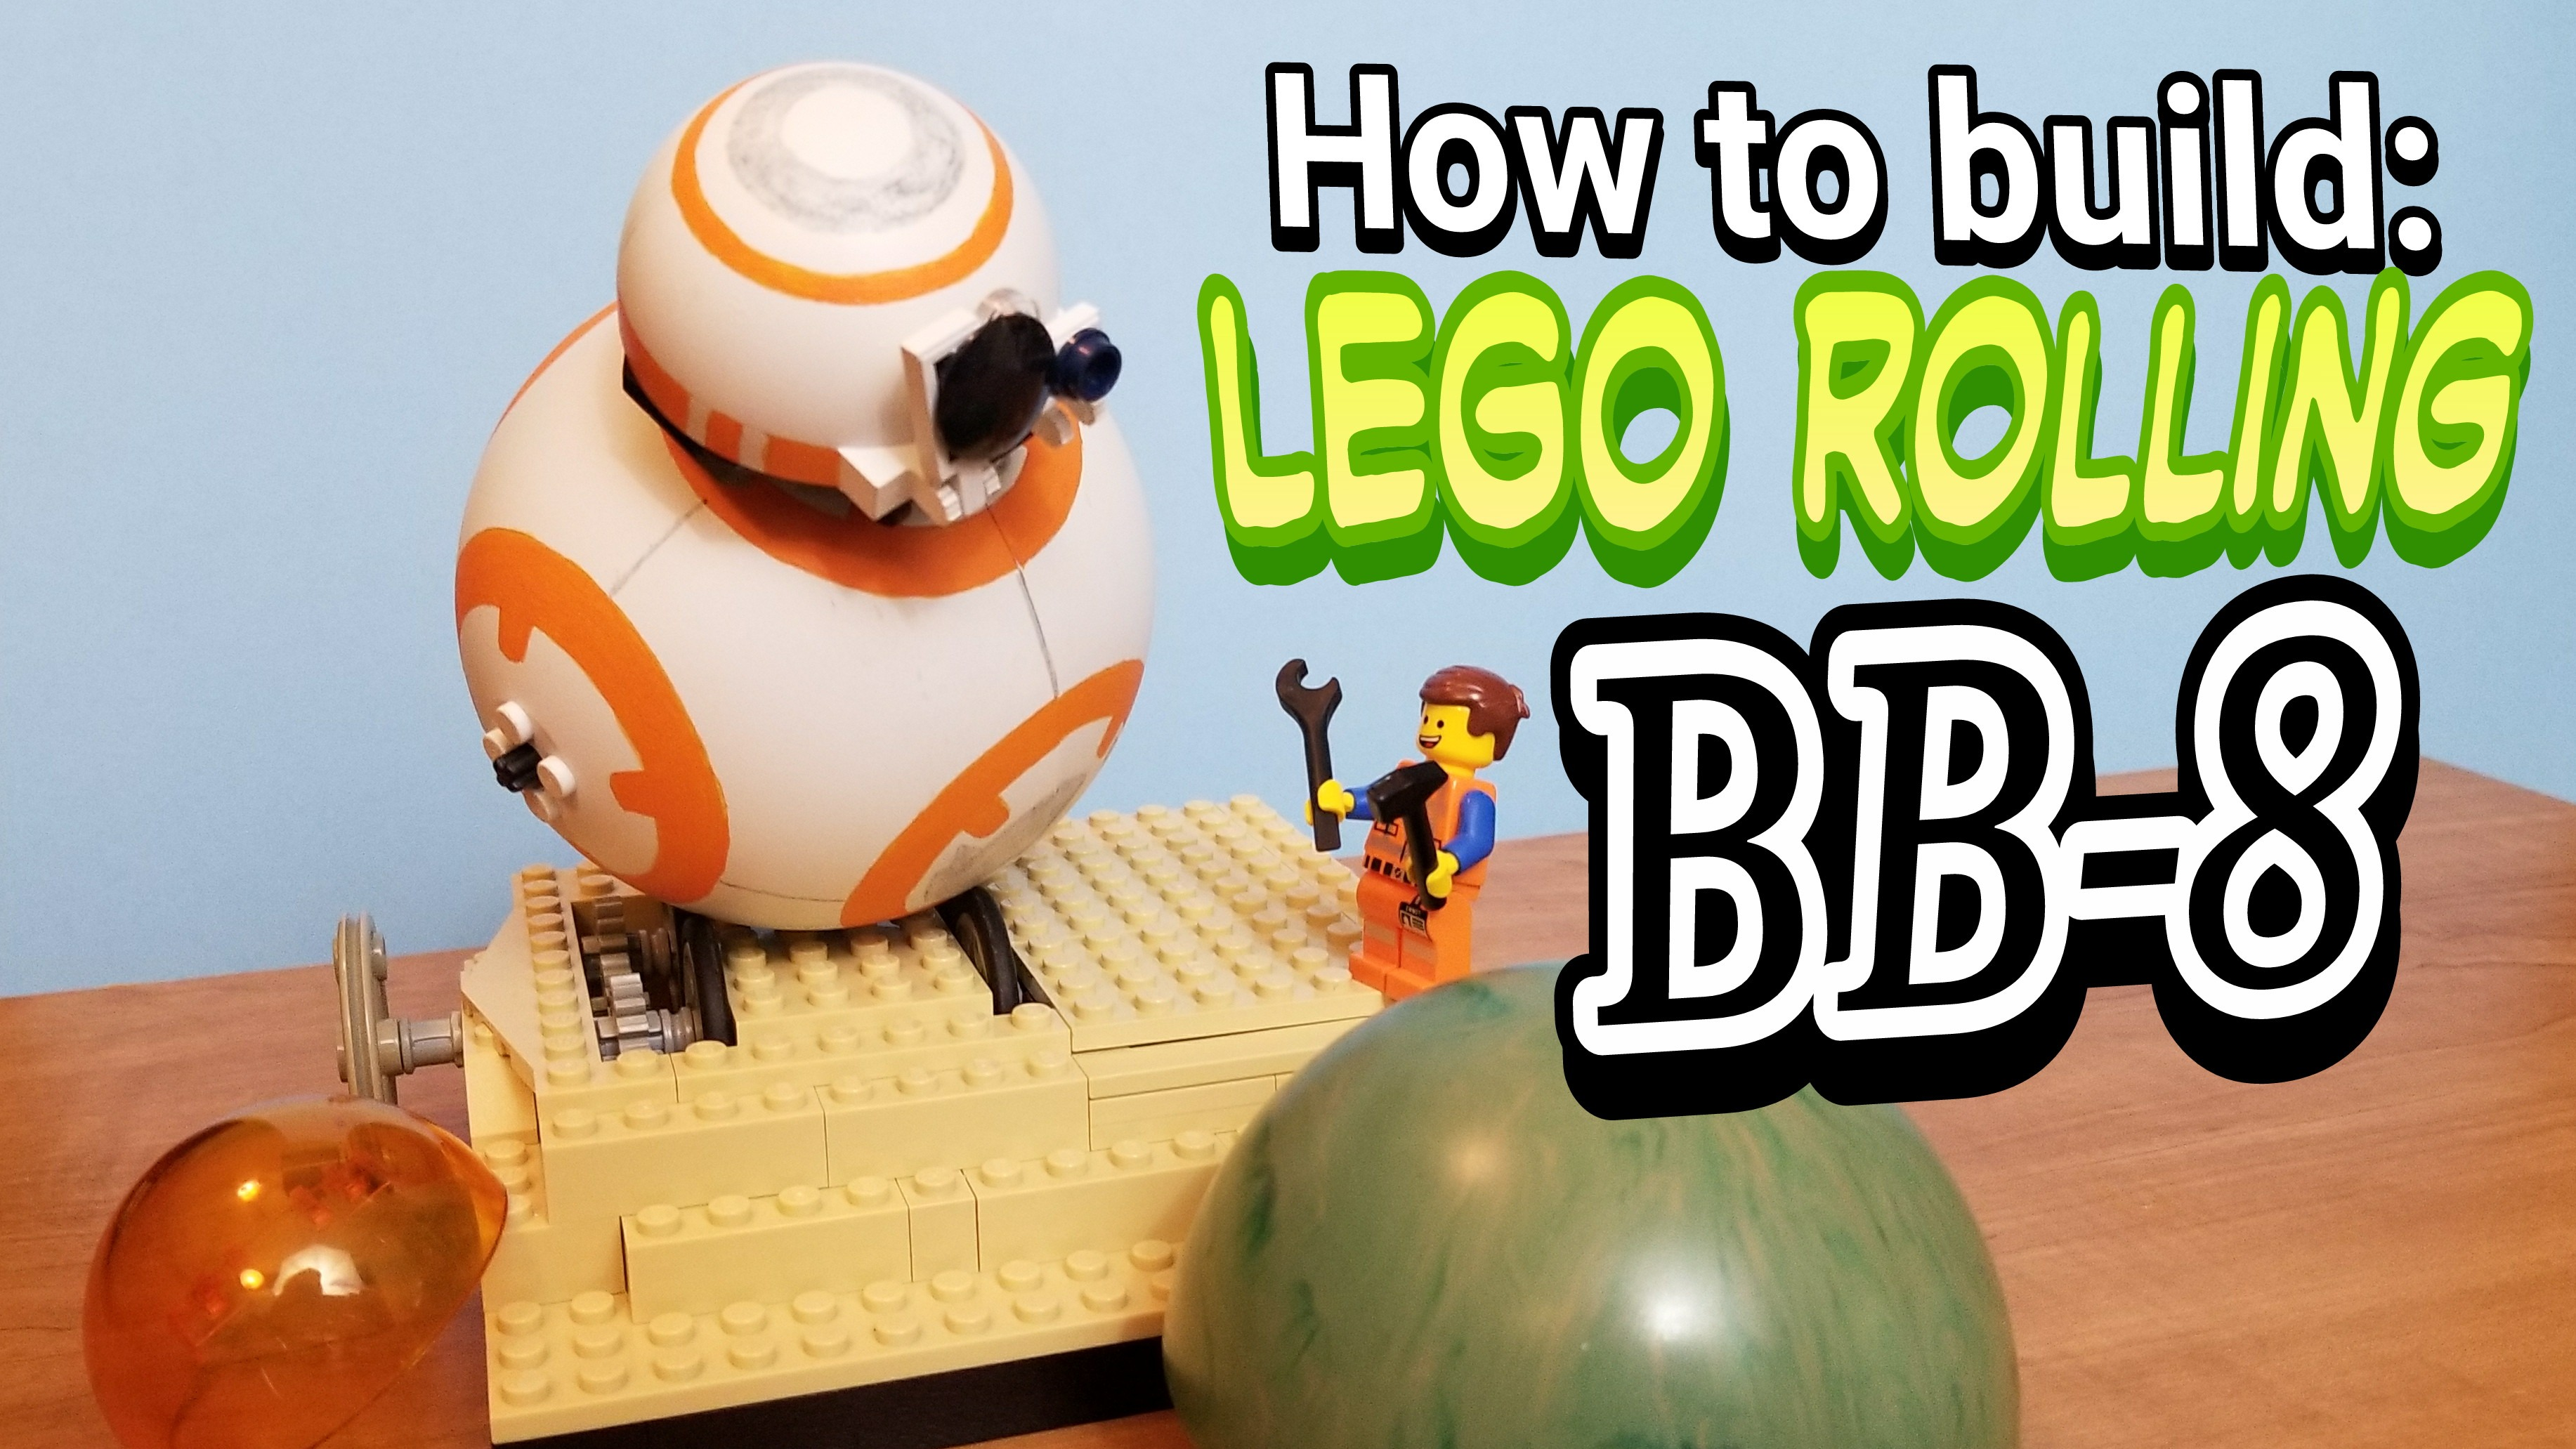 How to build a Lego Rolling BB-8